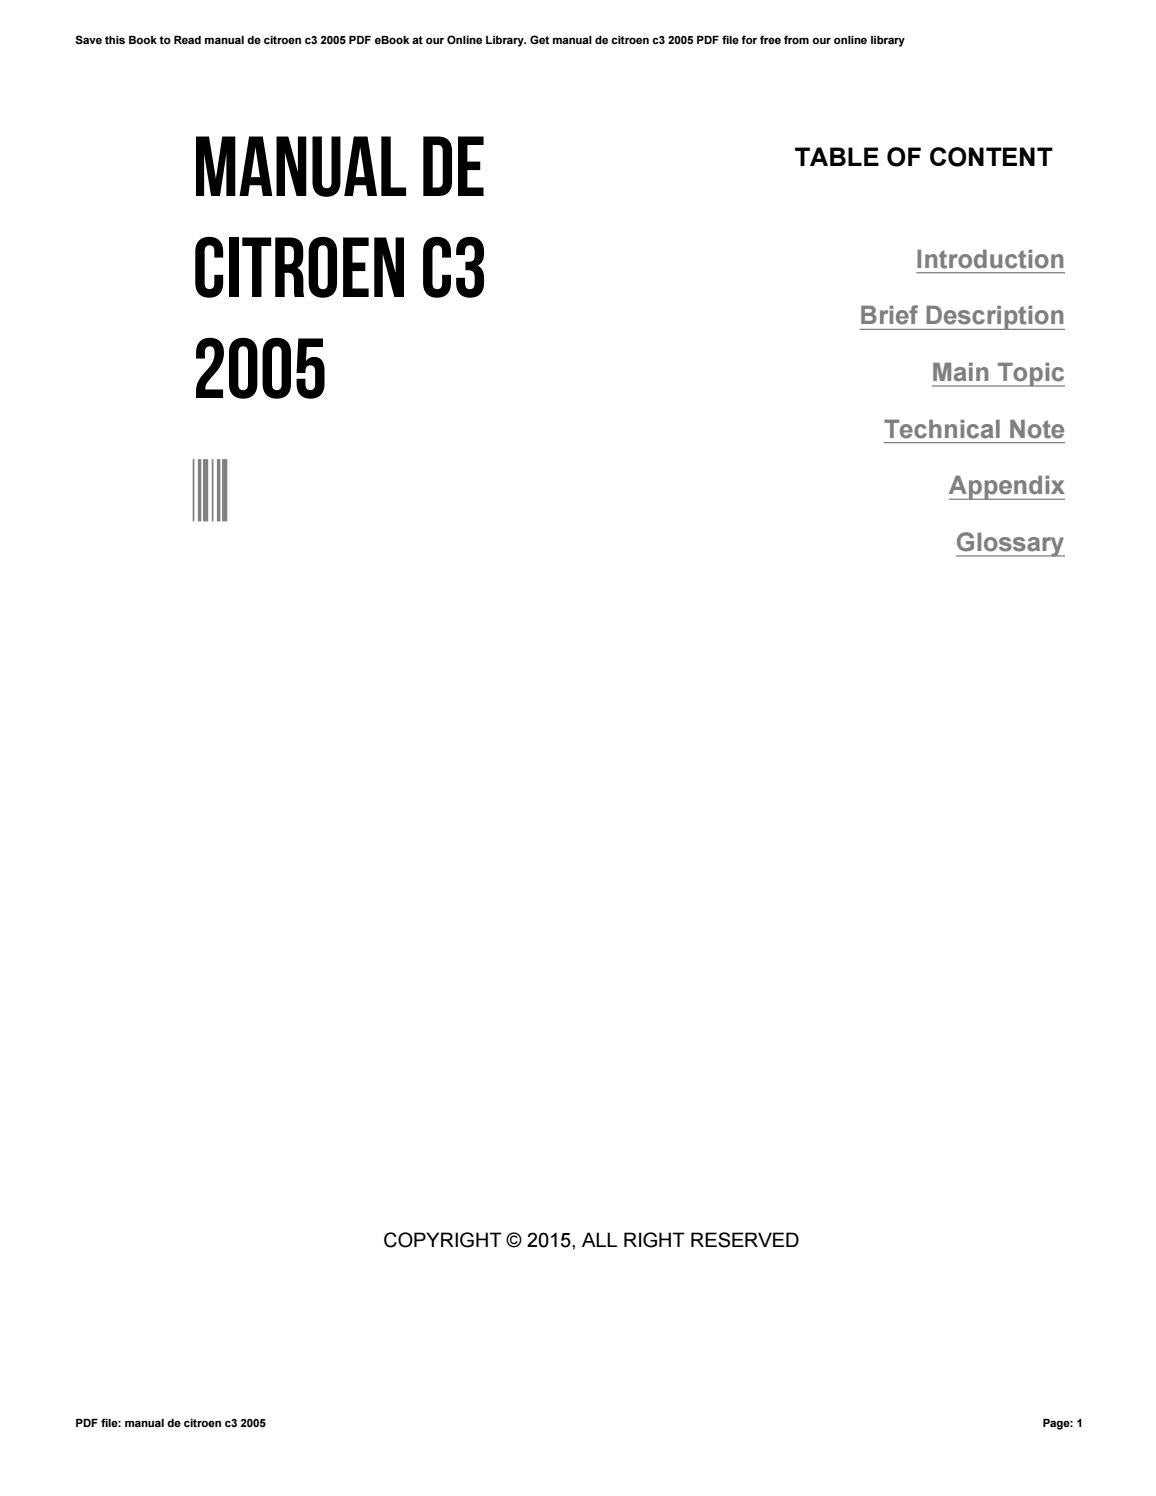 05 Citroen C3 Owners Manual Ebooks Pdf Free Download